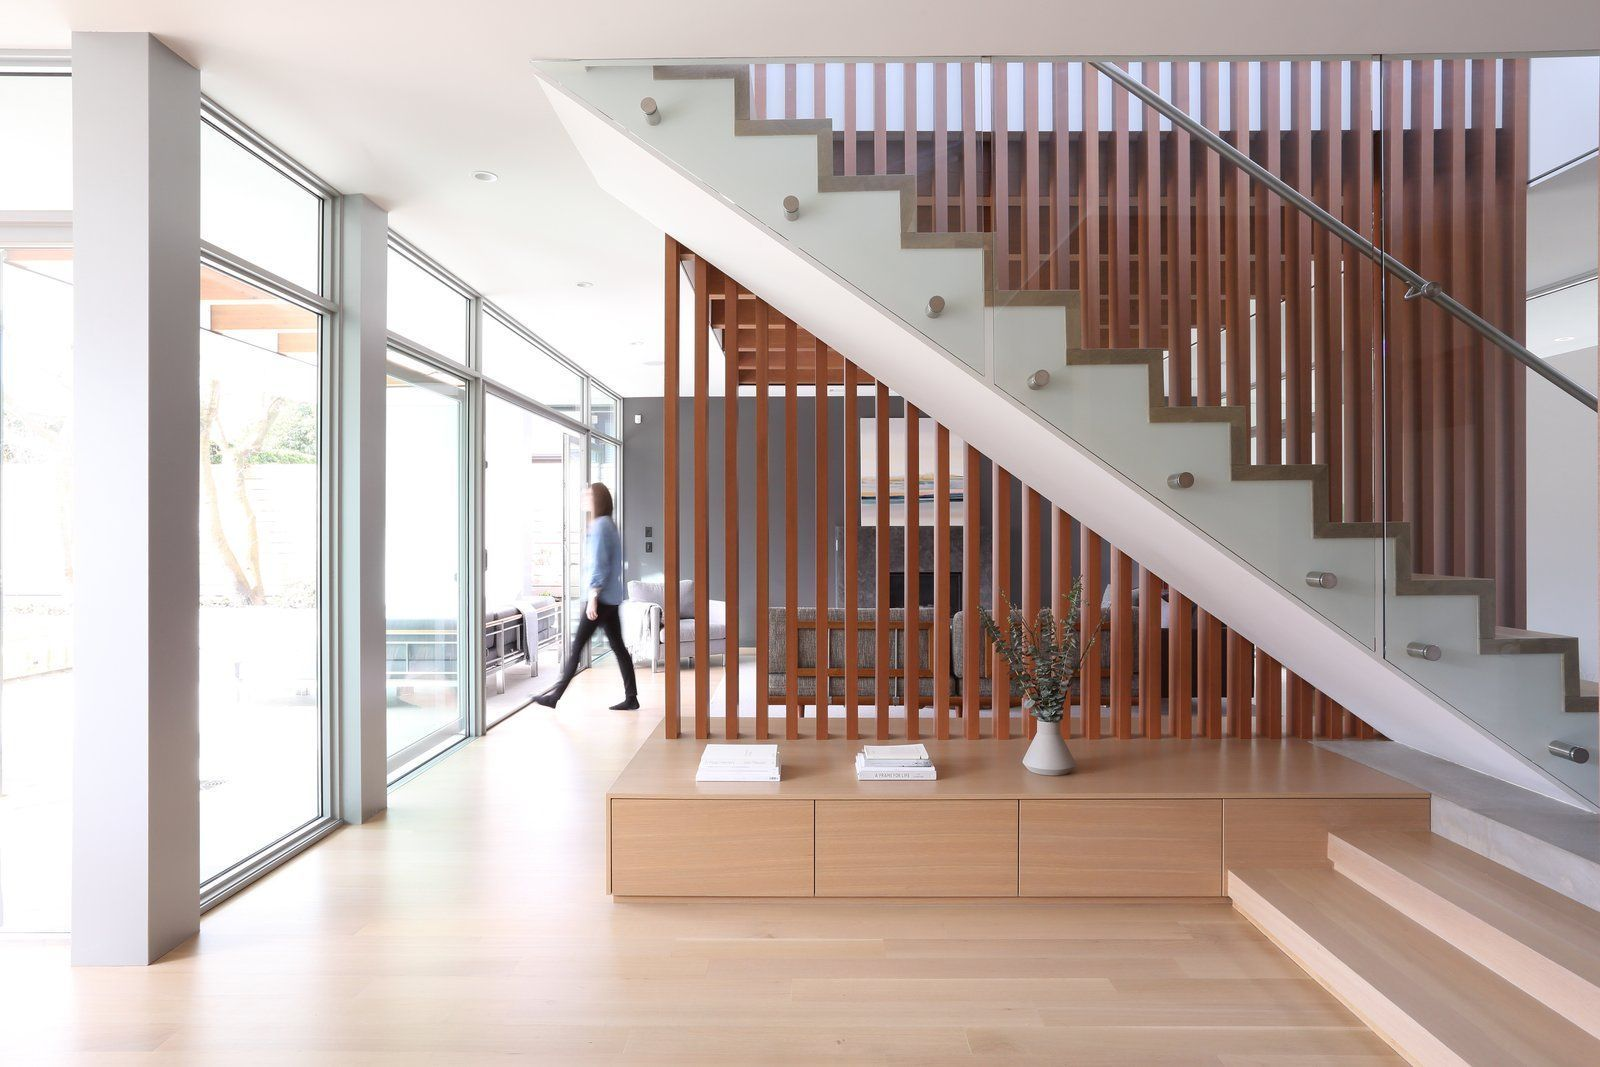 Staircase, Wood Tread, and Metal Railing The twolevel